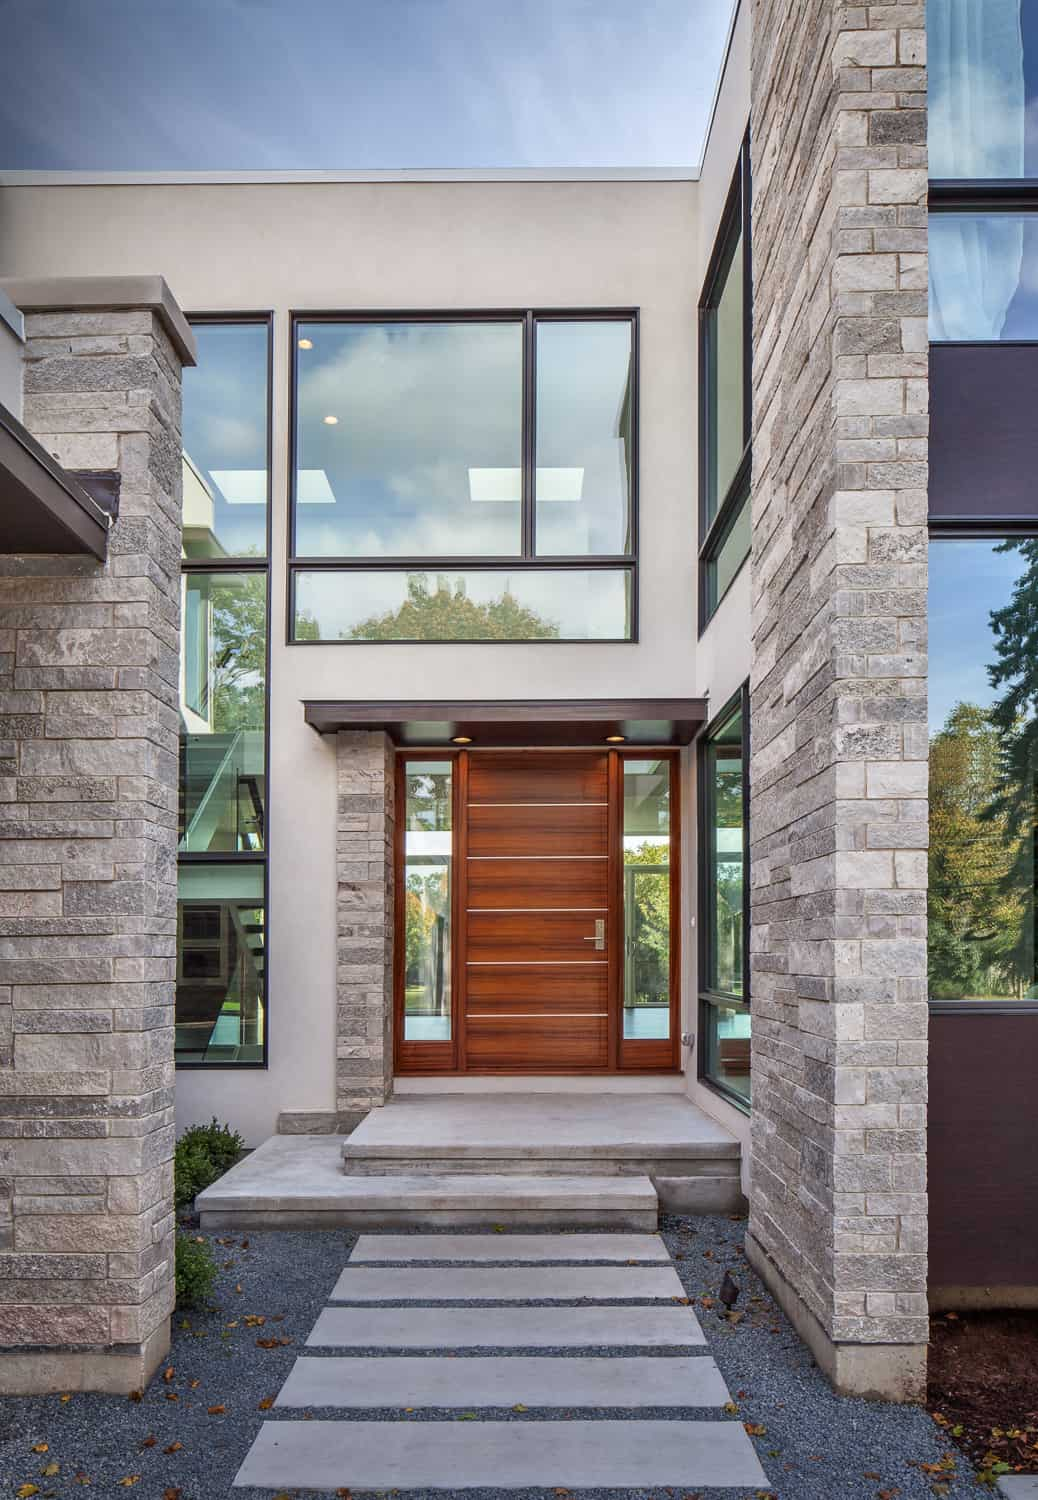 Home (Front & Rear) Elevation Design Ideas / Photo Gallery on Glass House Design Ideas  id=81867